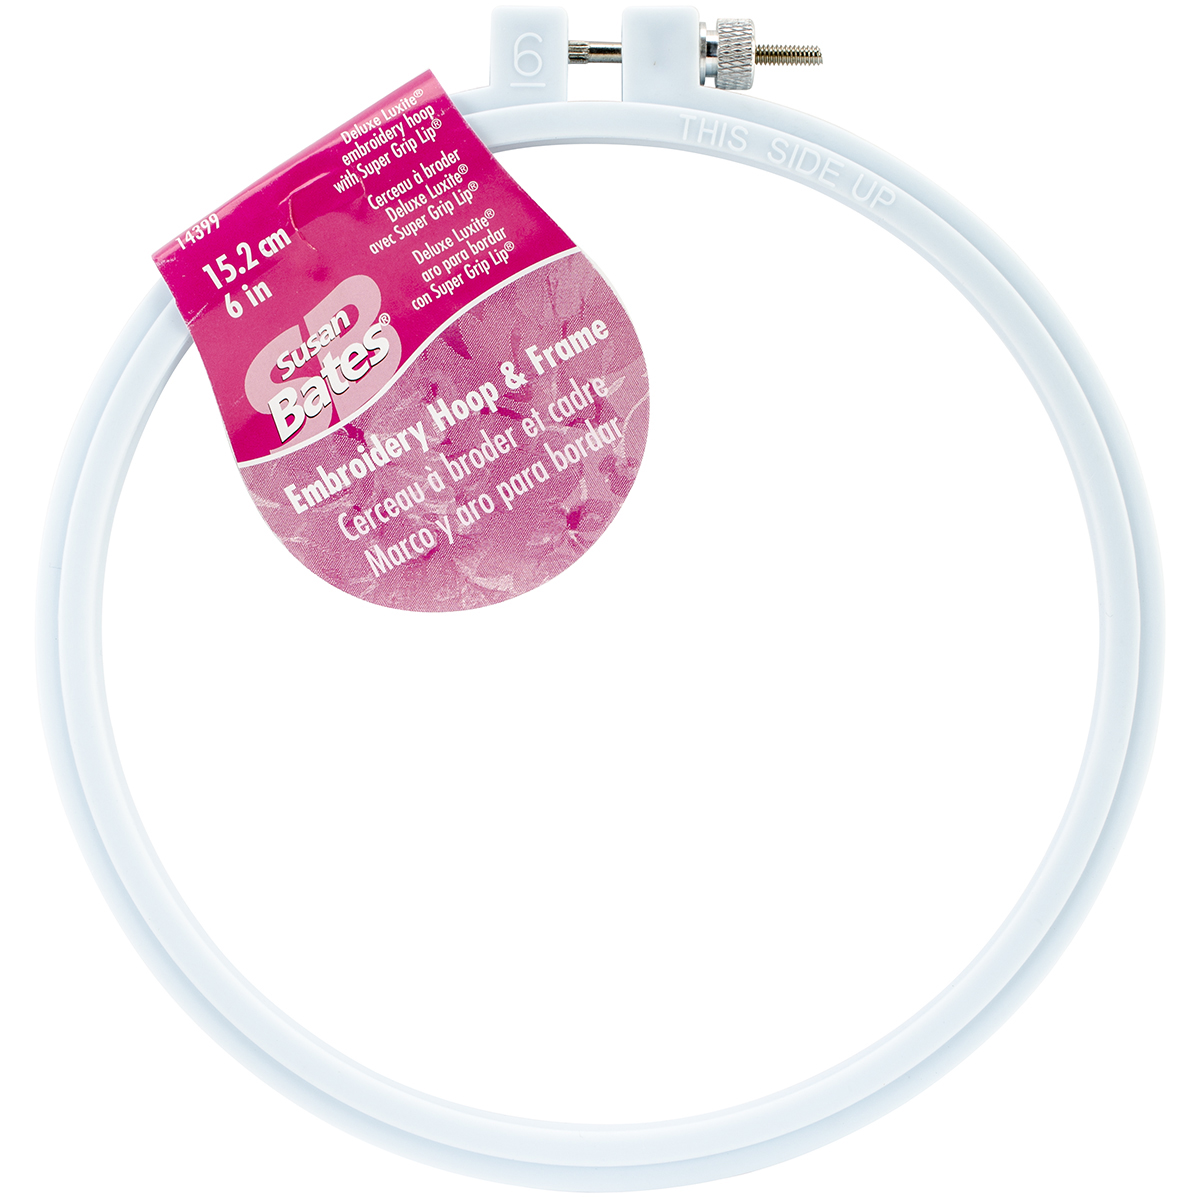 Bates Plastic Embroidery Hoop - Light Blue-Size 6""